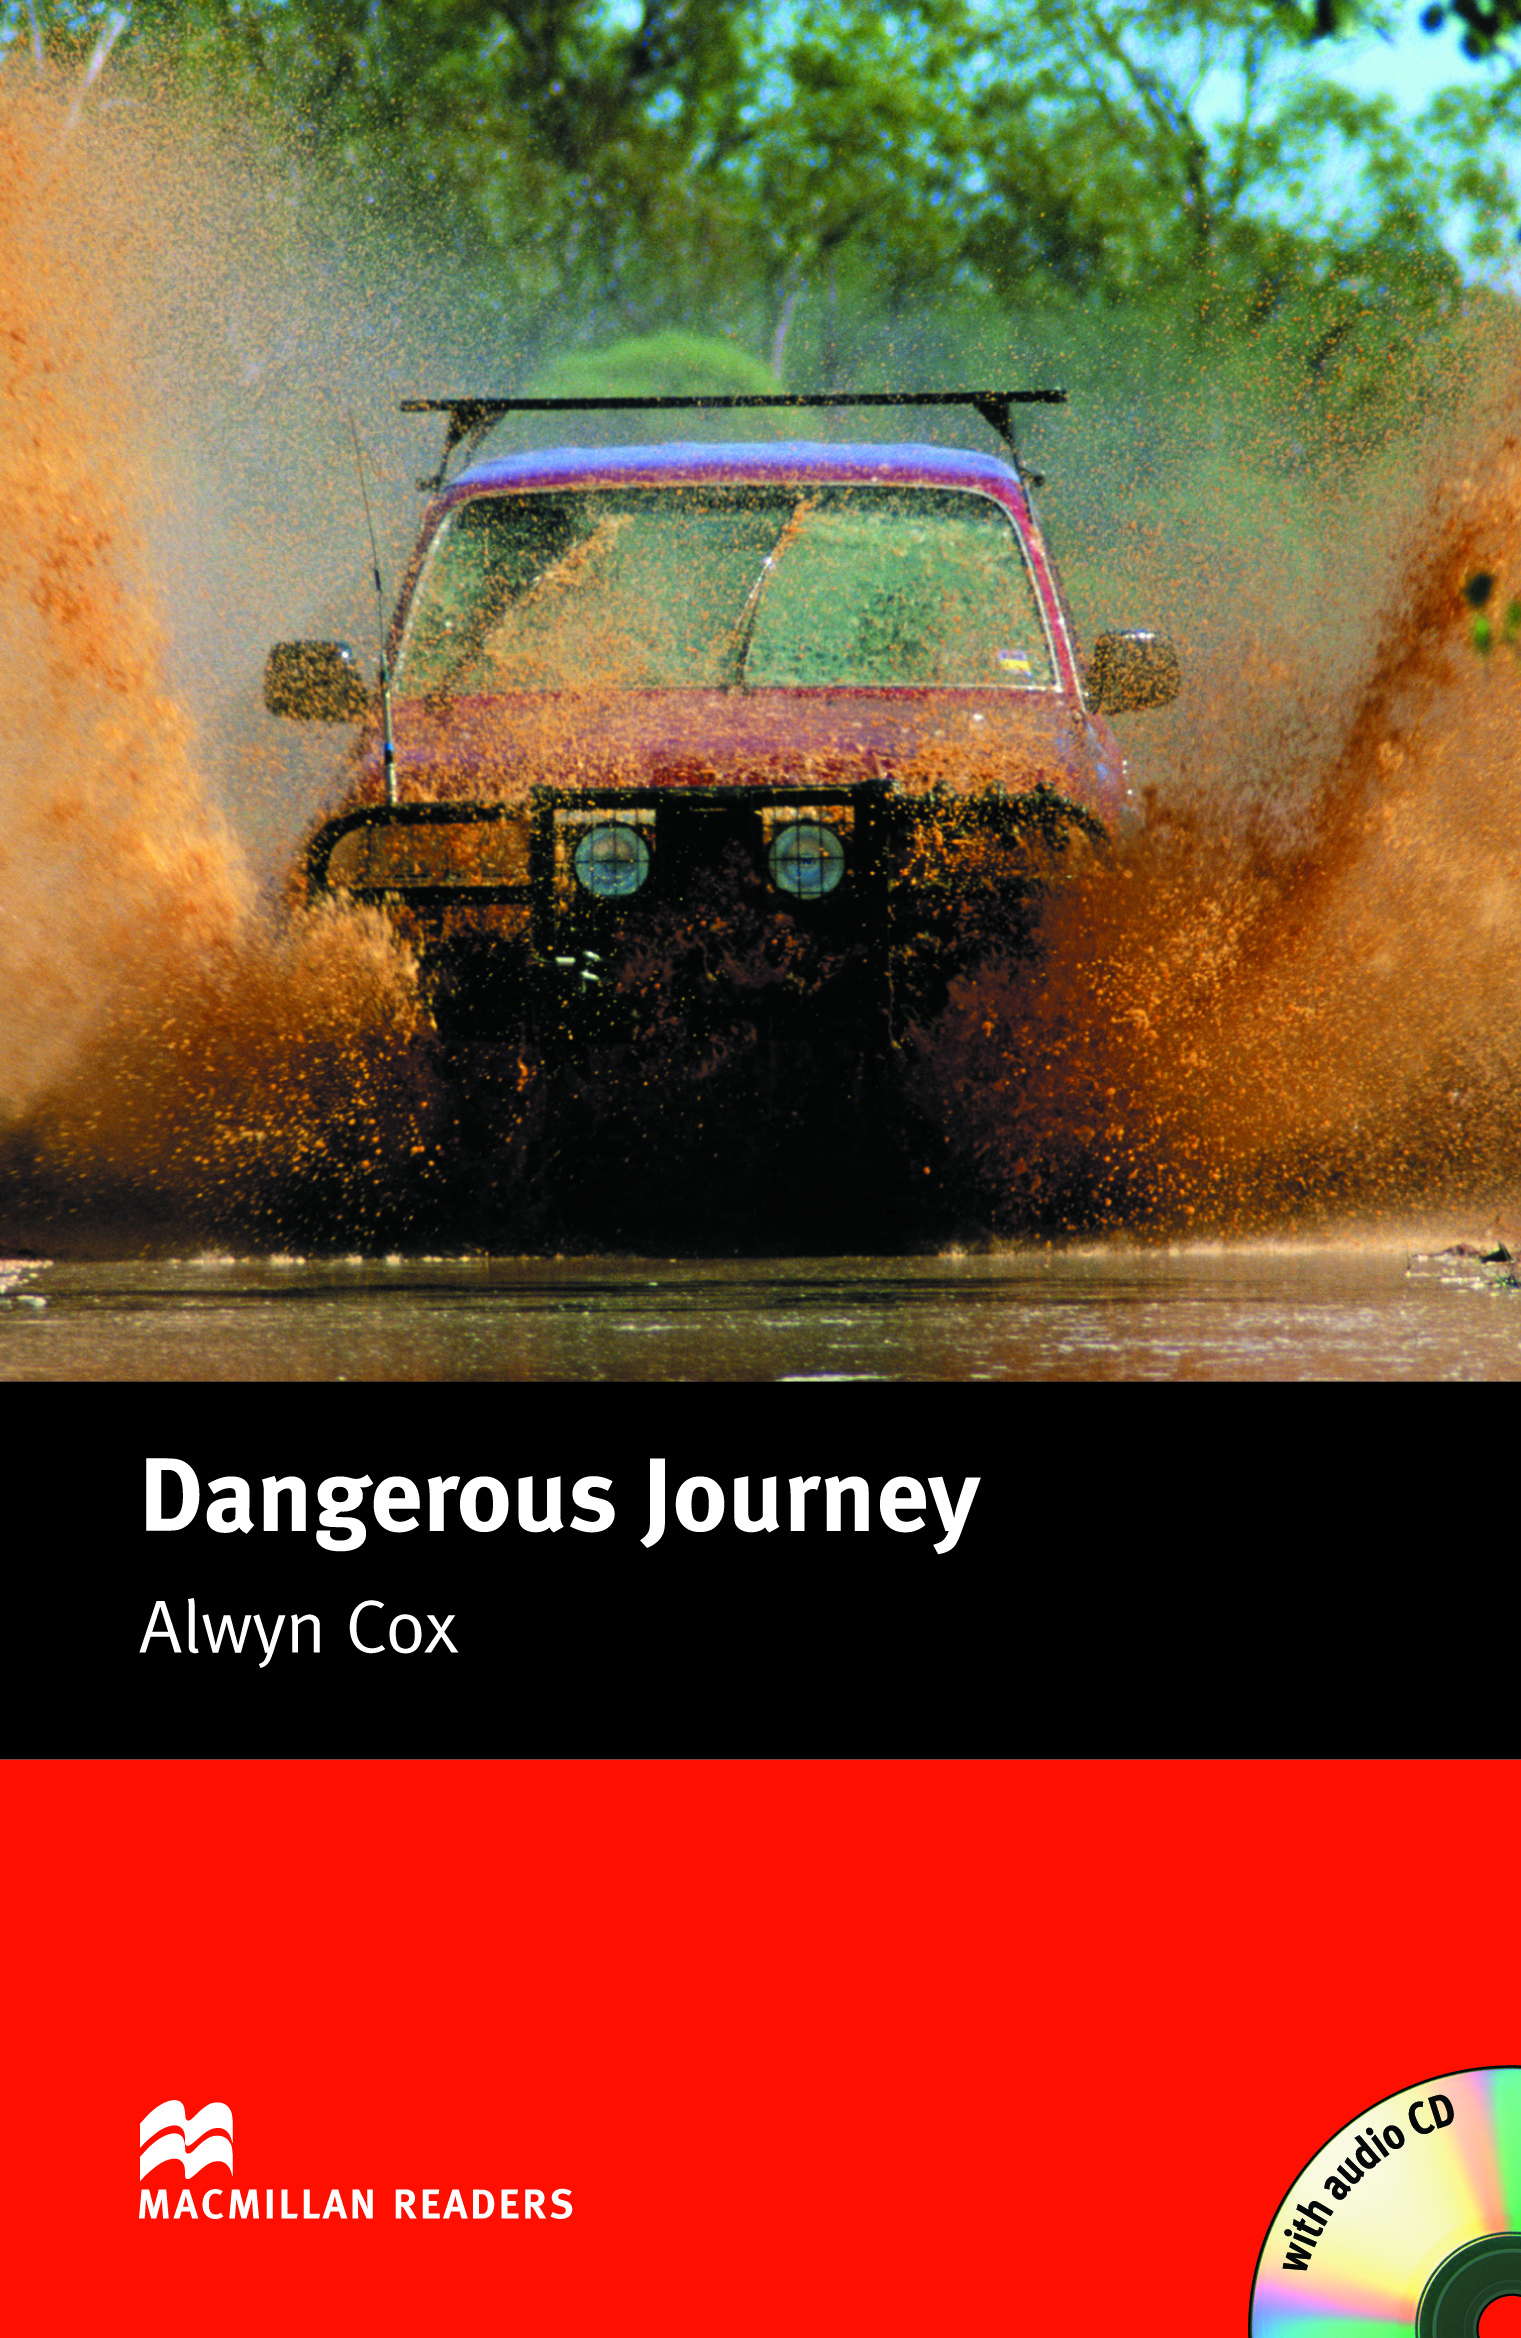 Macmillan Readers: Dangerous Journey Pack